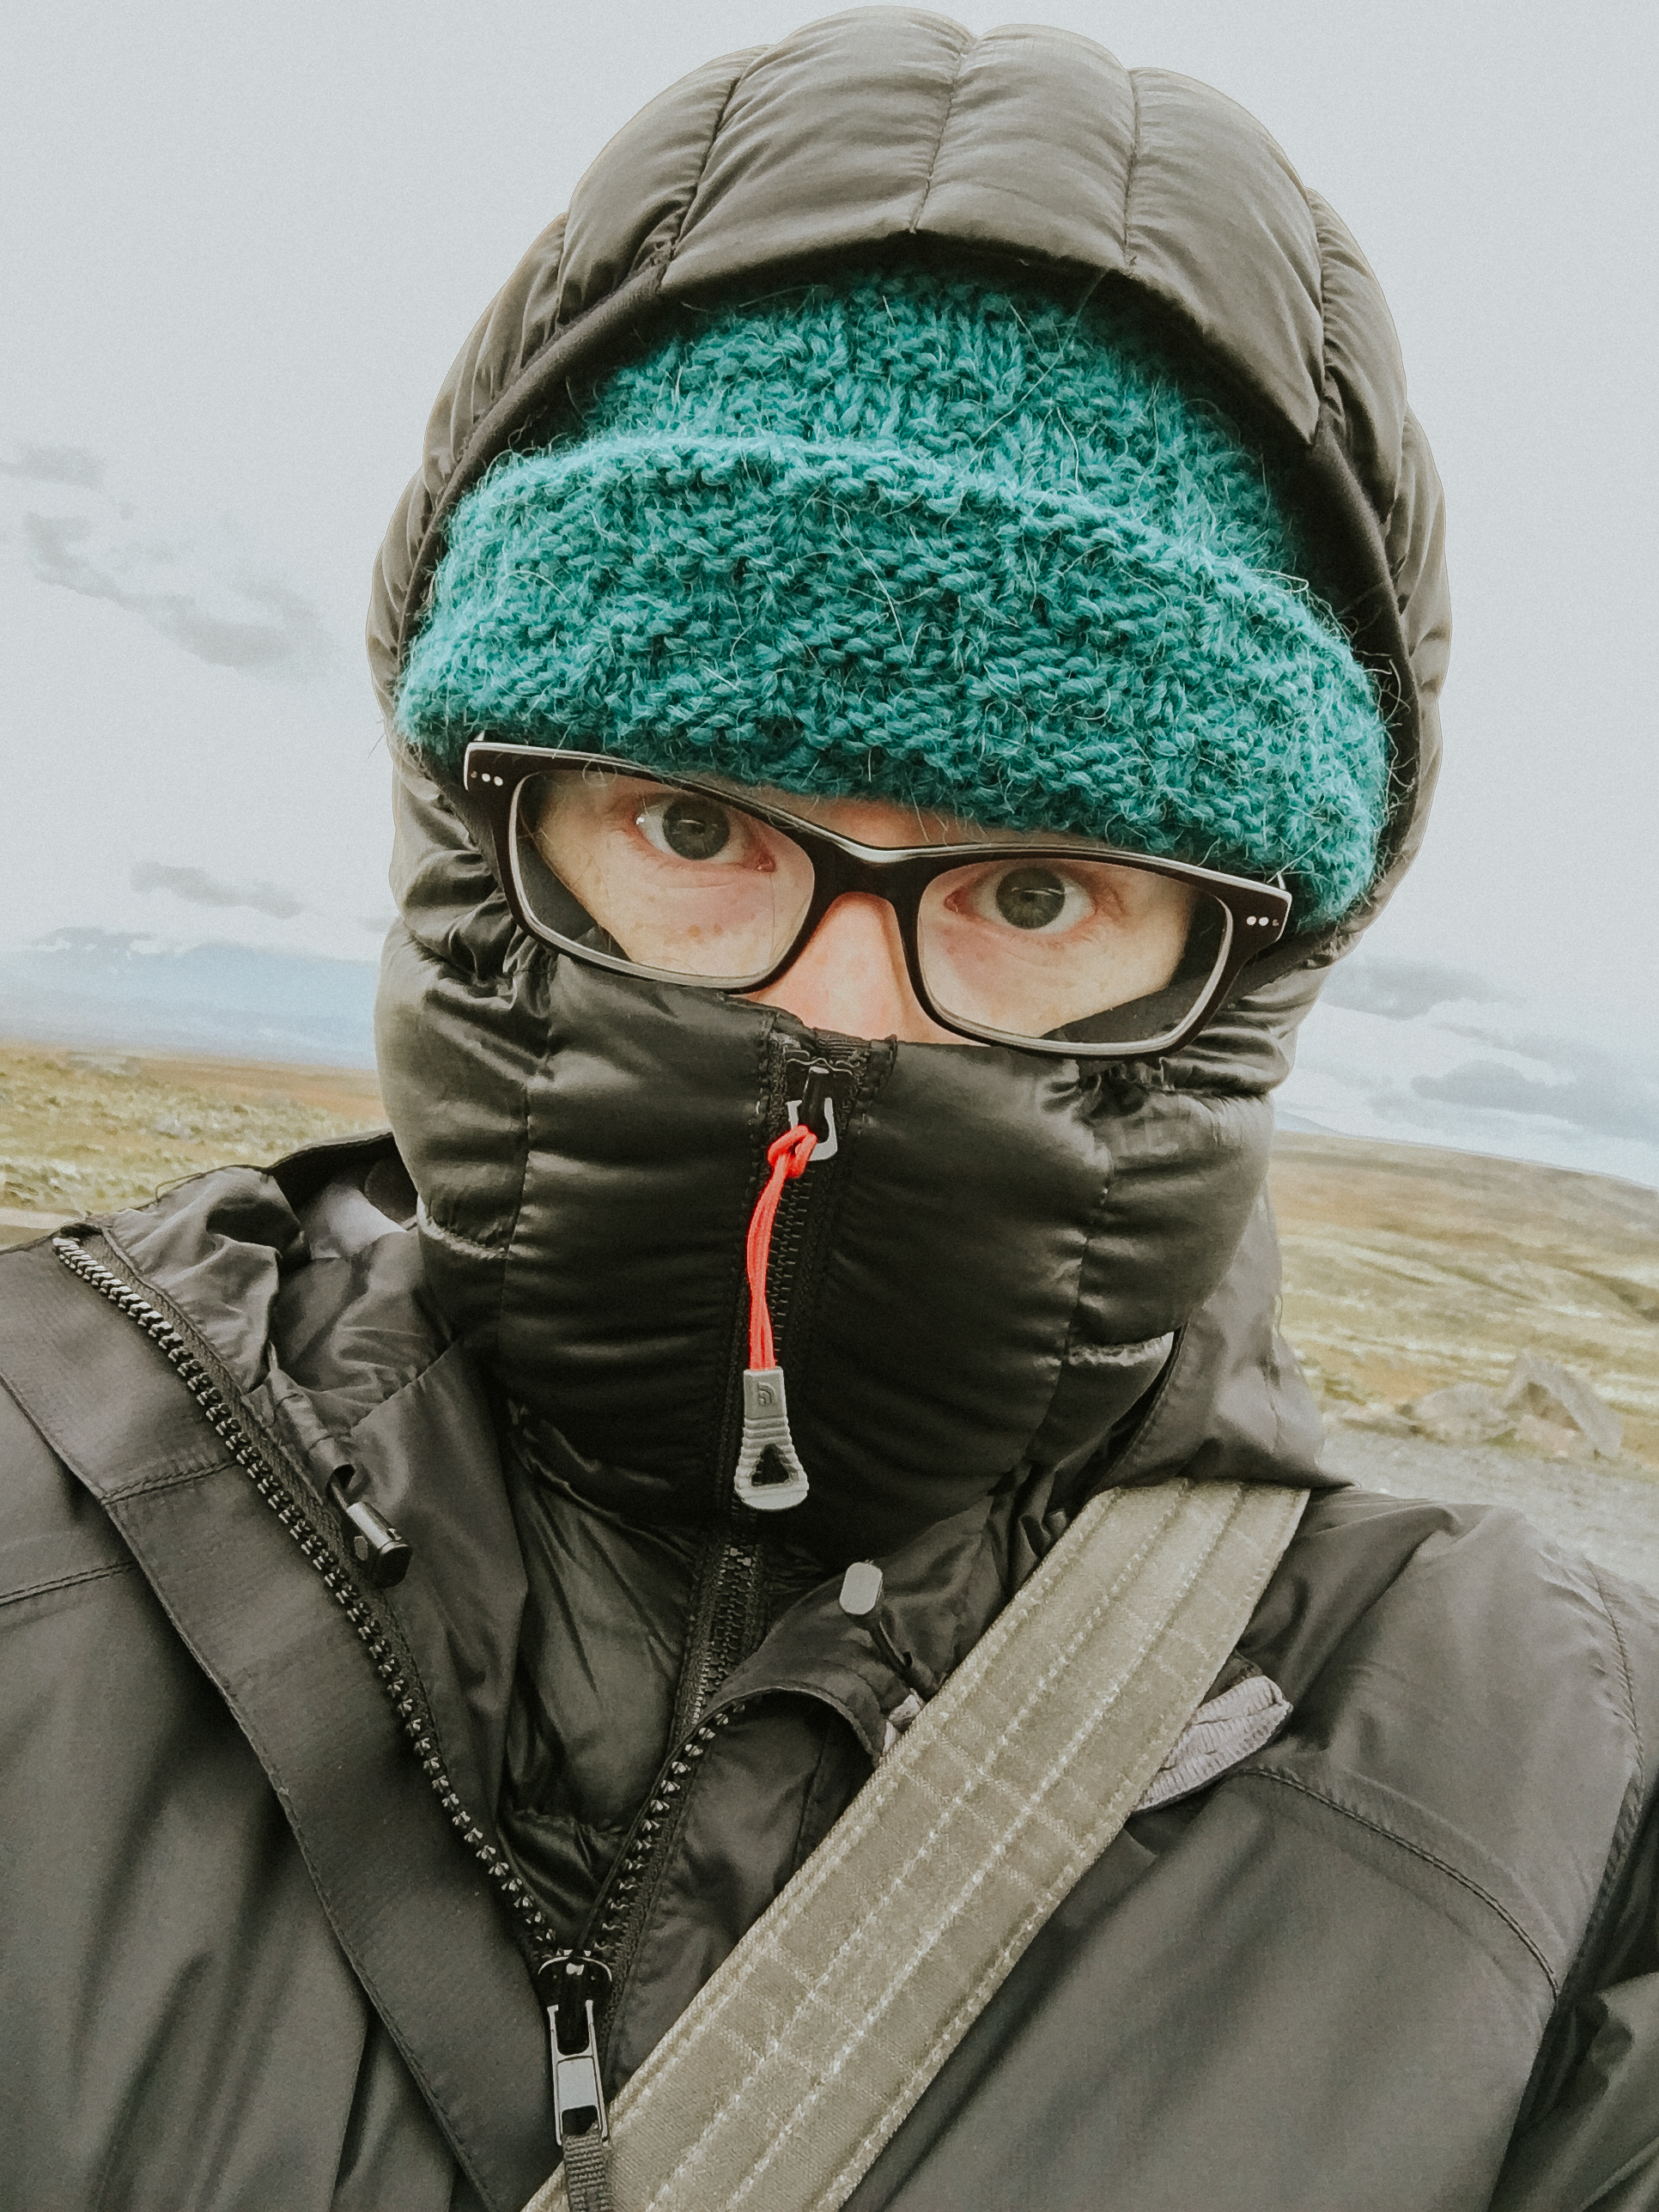 A selfie of me all zipped up in my down jacket!